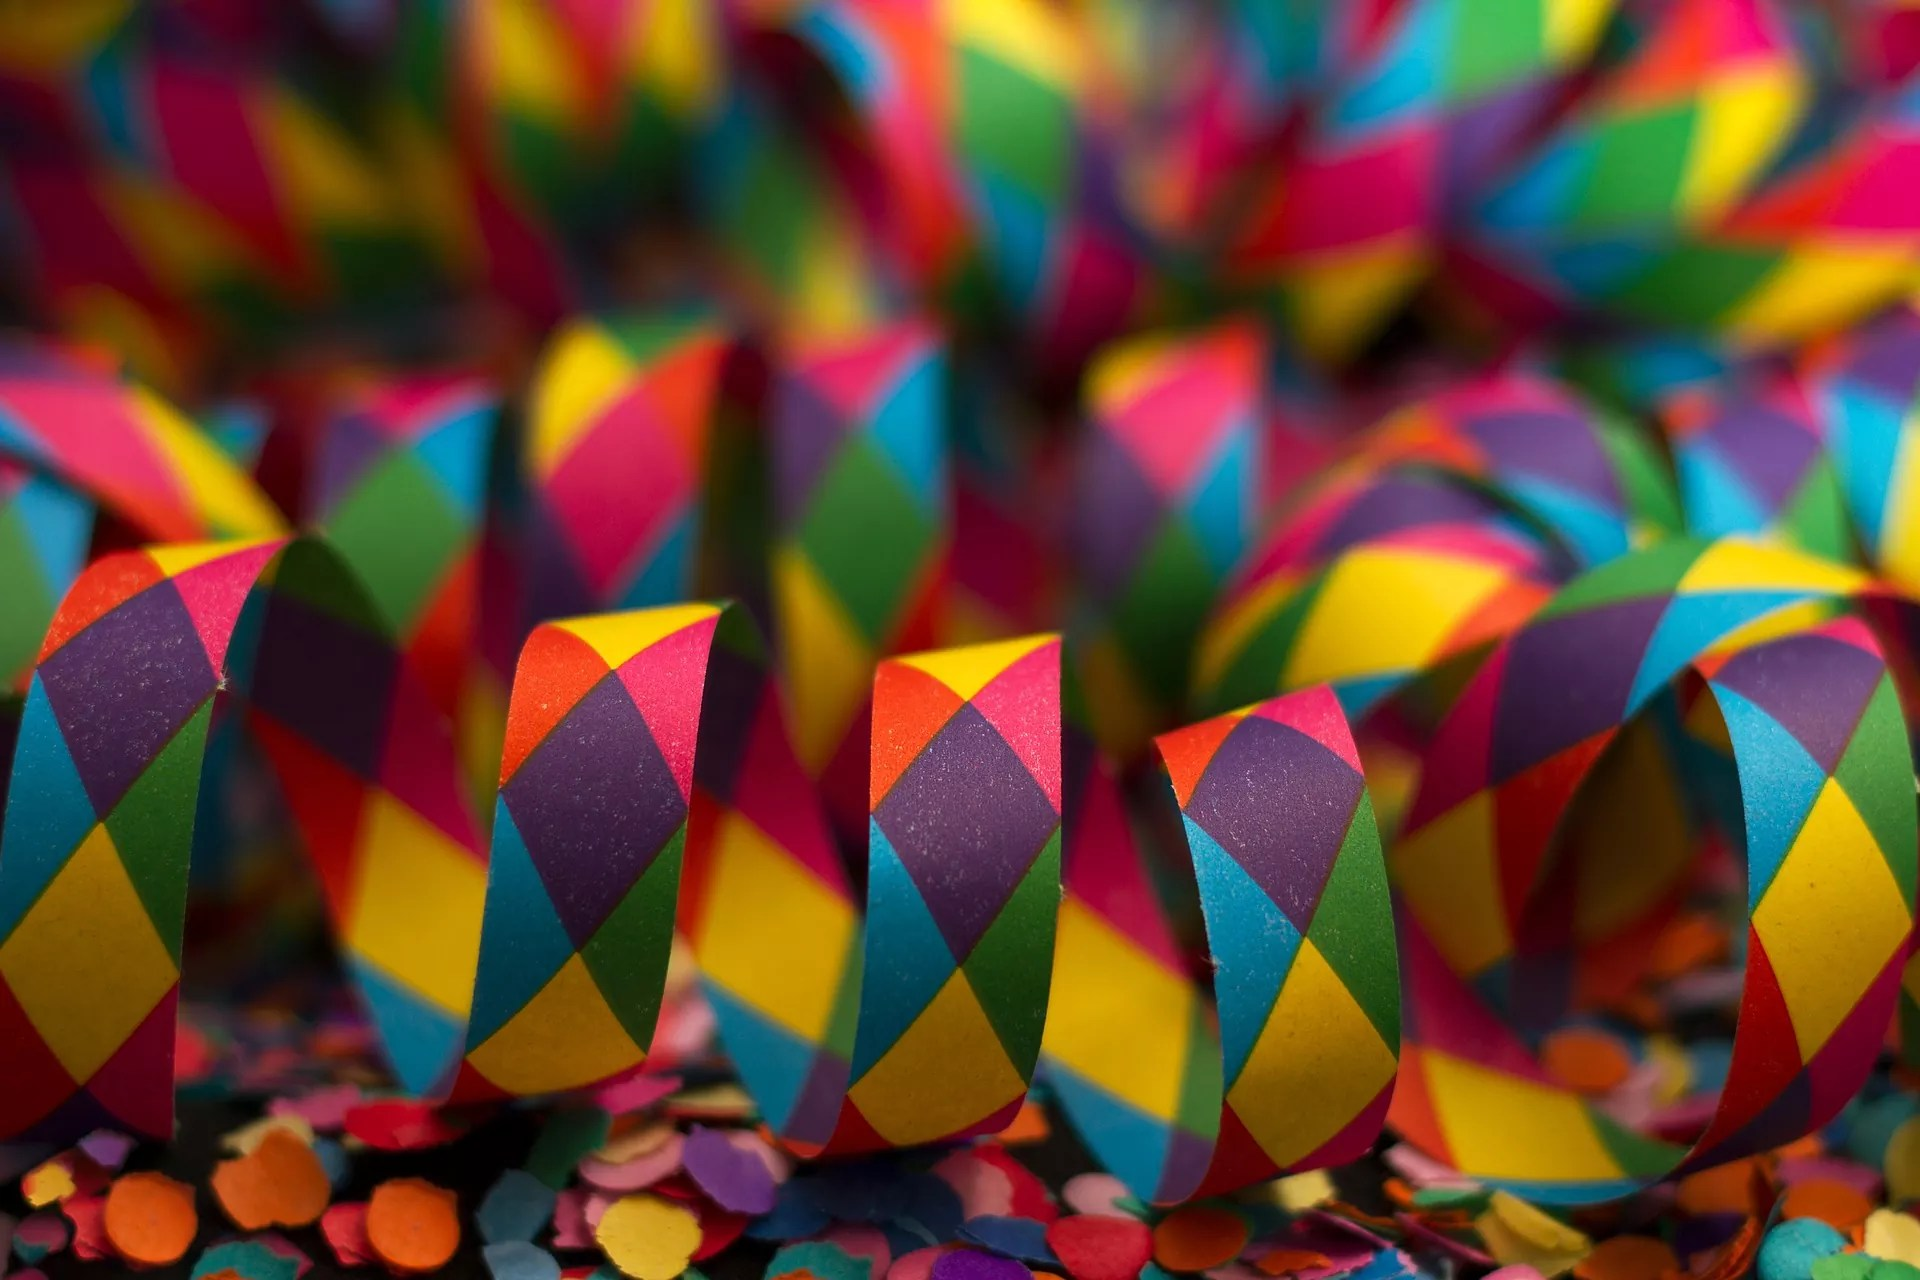 An up-close shot of colorful confetti and streamers